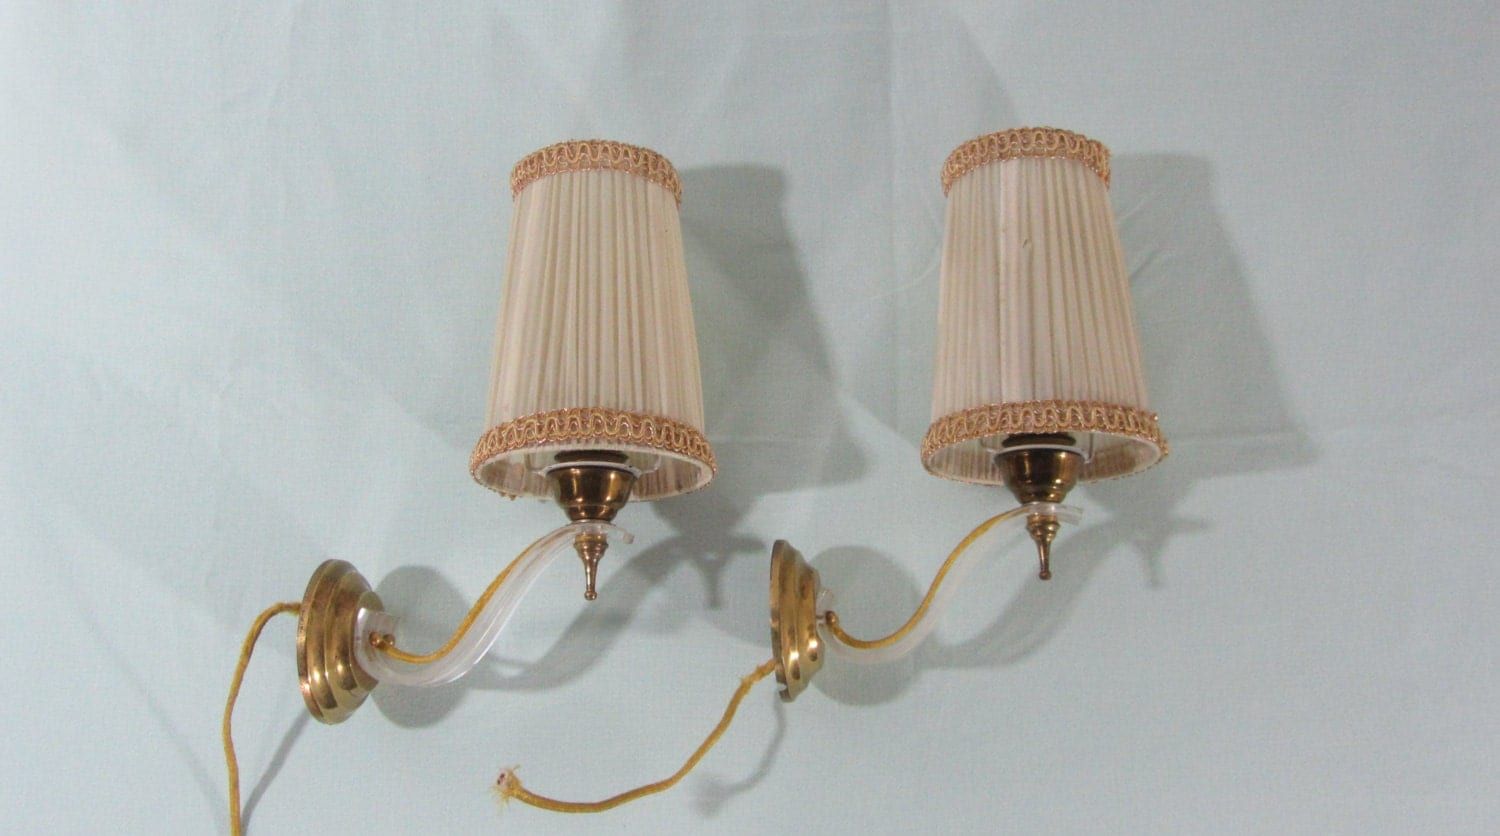 Wall Sconce Bedroom Lighting : 2 wall sconce 2 wall lights bedroom lights French sconce